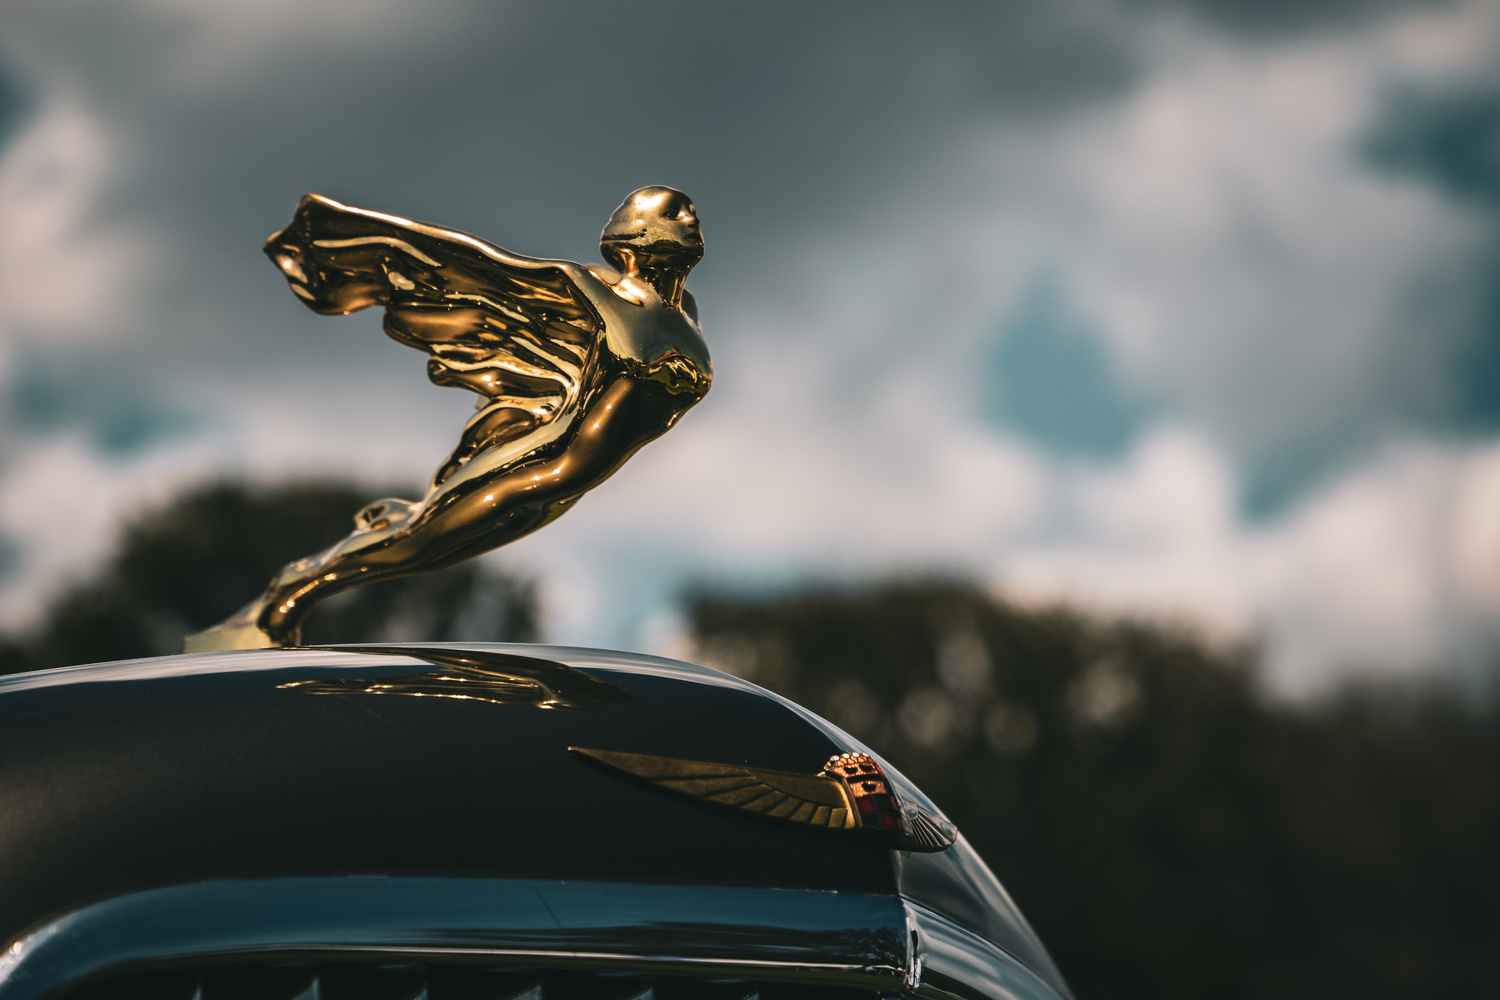 Cadillac Winged Lady by Cam Smith